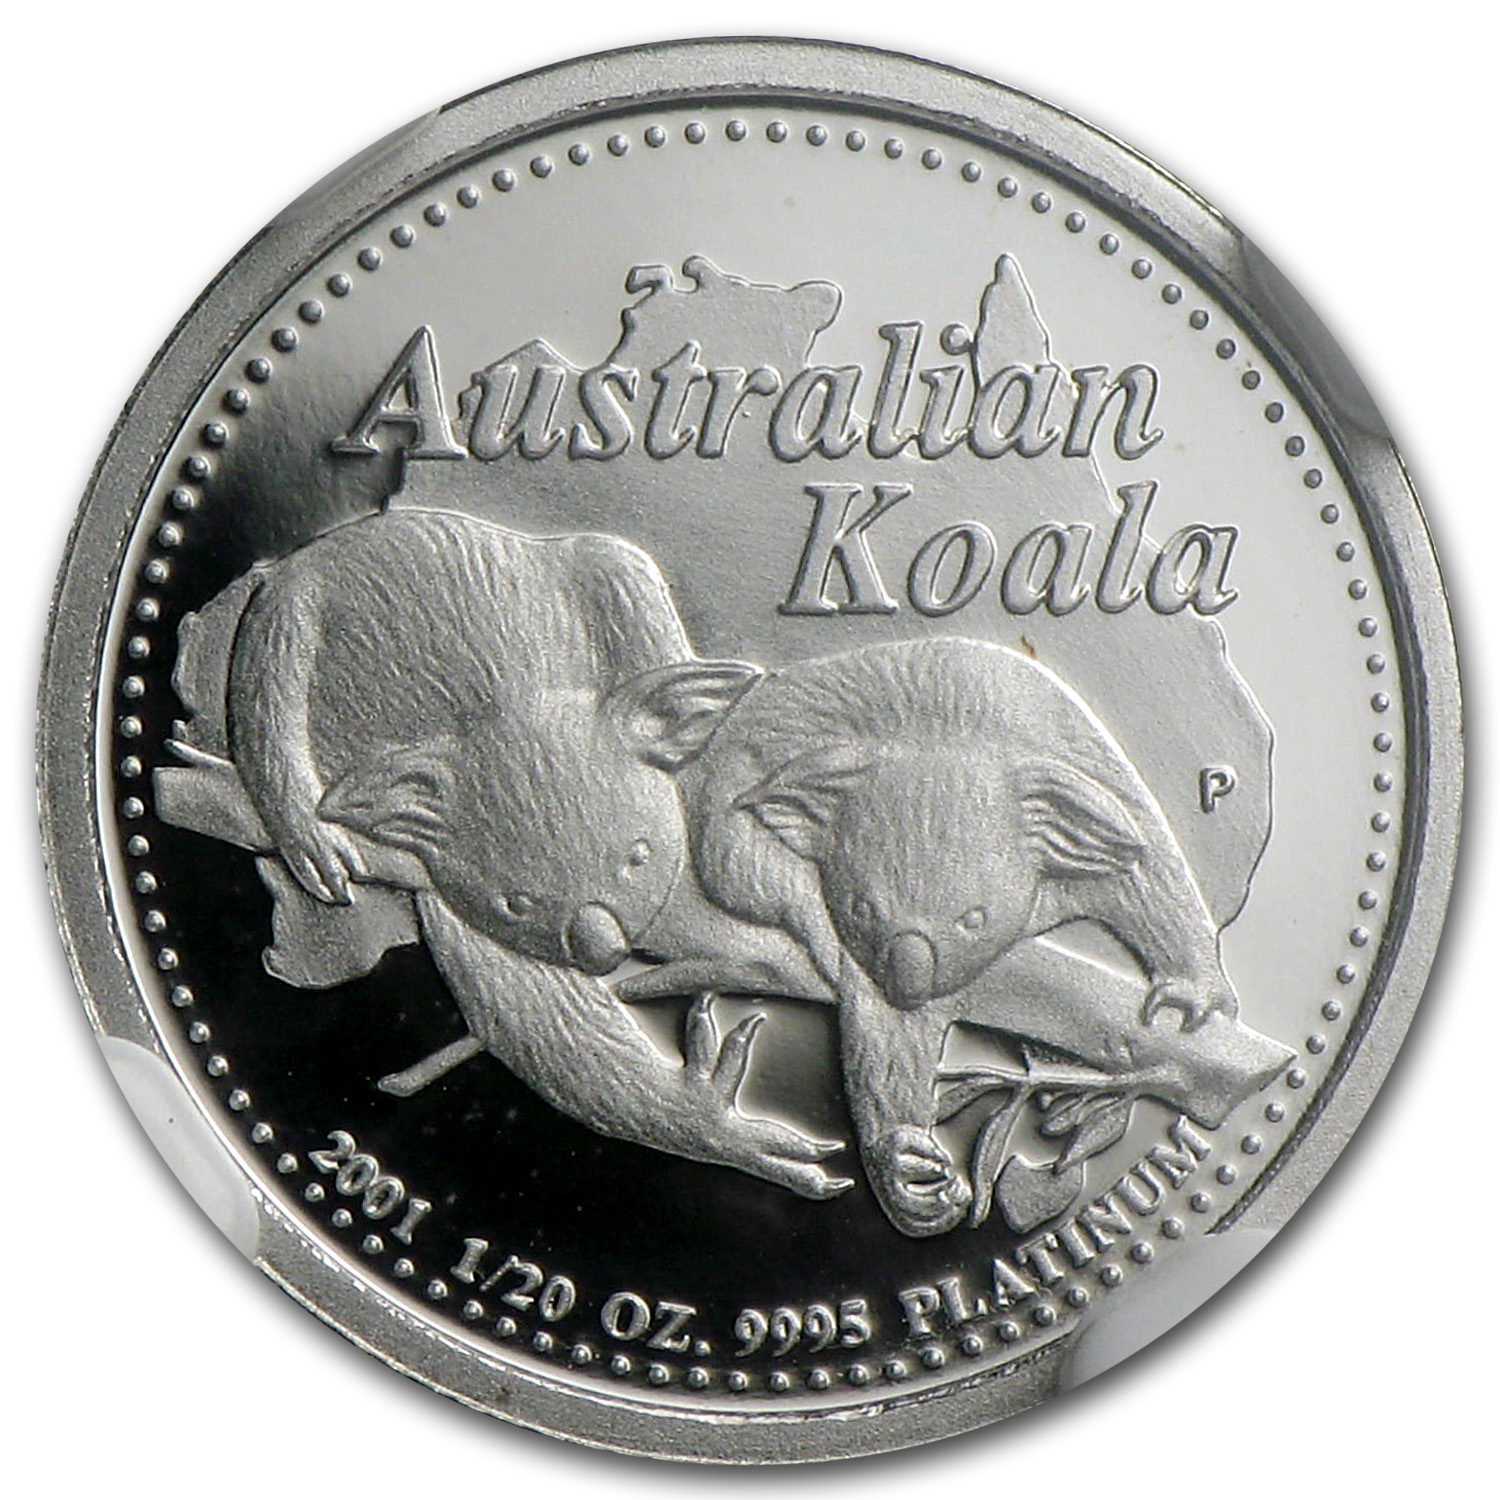 2001 Australia 1/20 oz Proof Platinum Koala PF-70 NGC